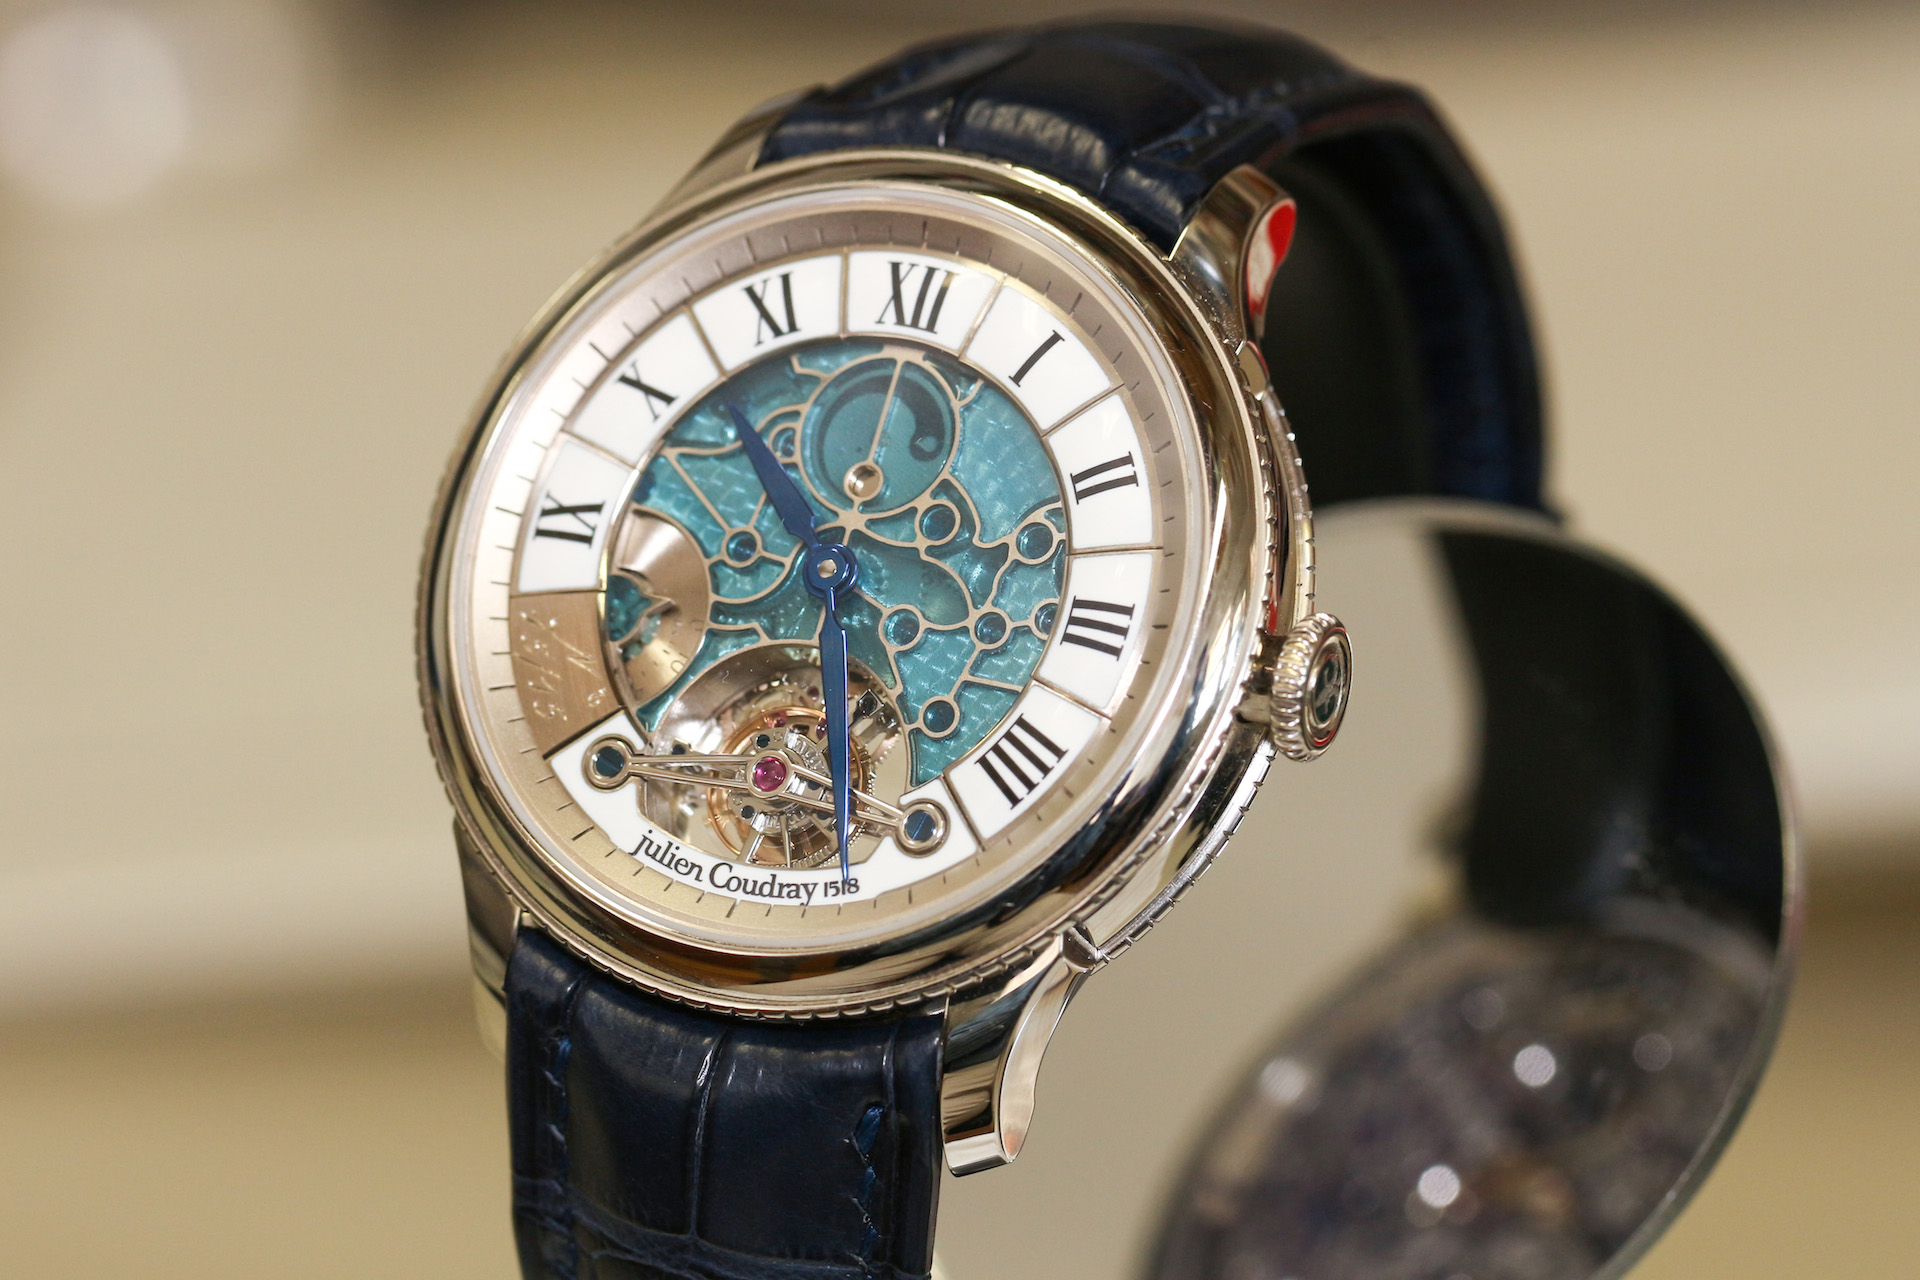 Julien Coudray Competentia 1515